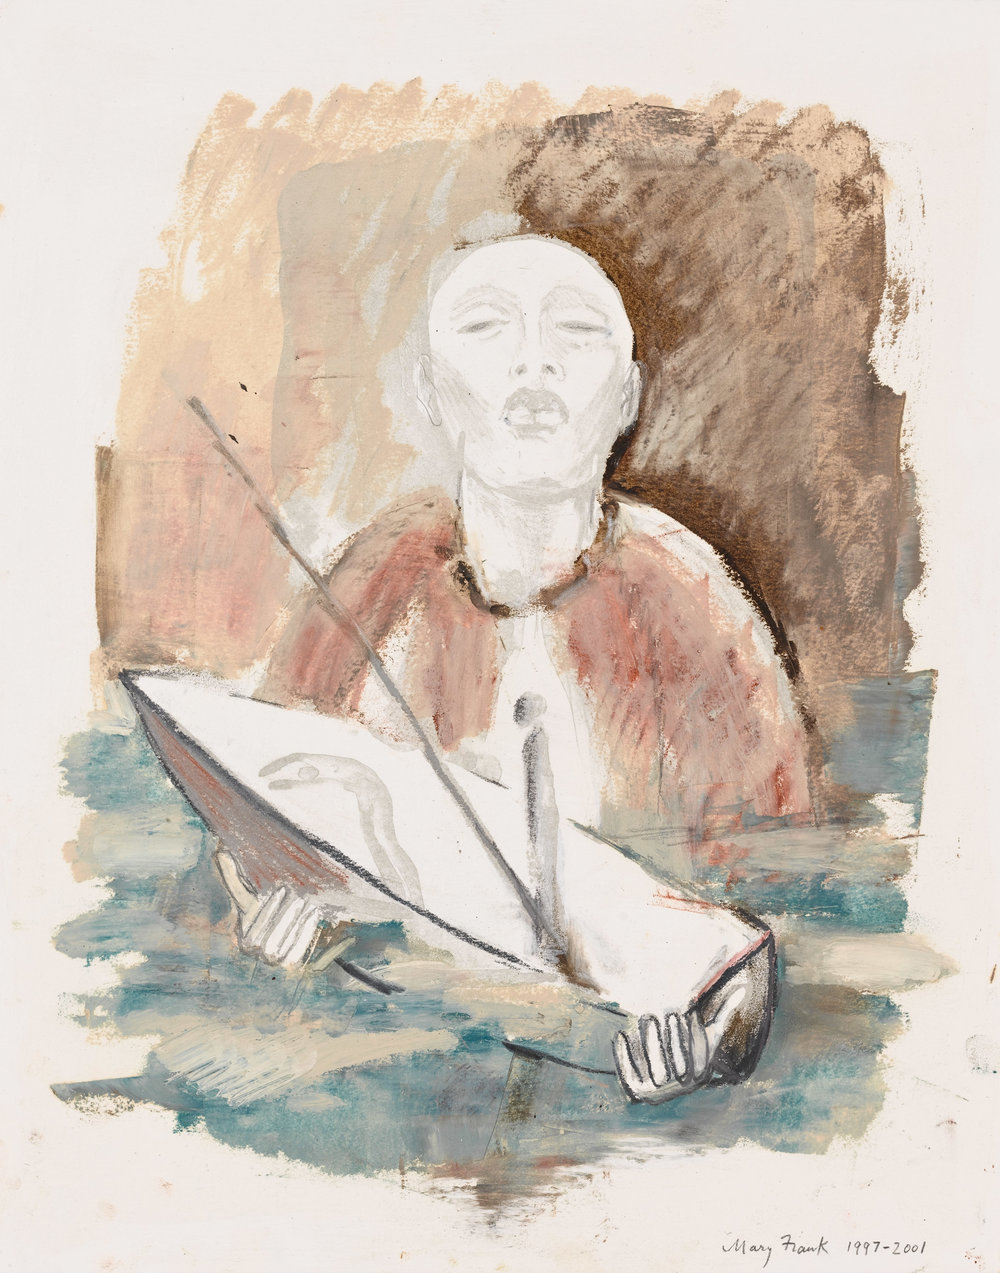 Man with Boat VI